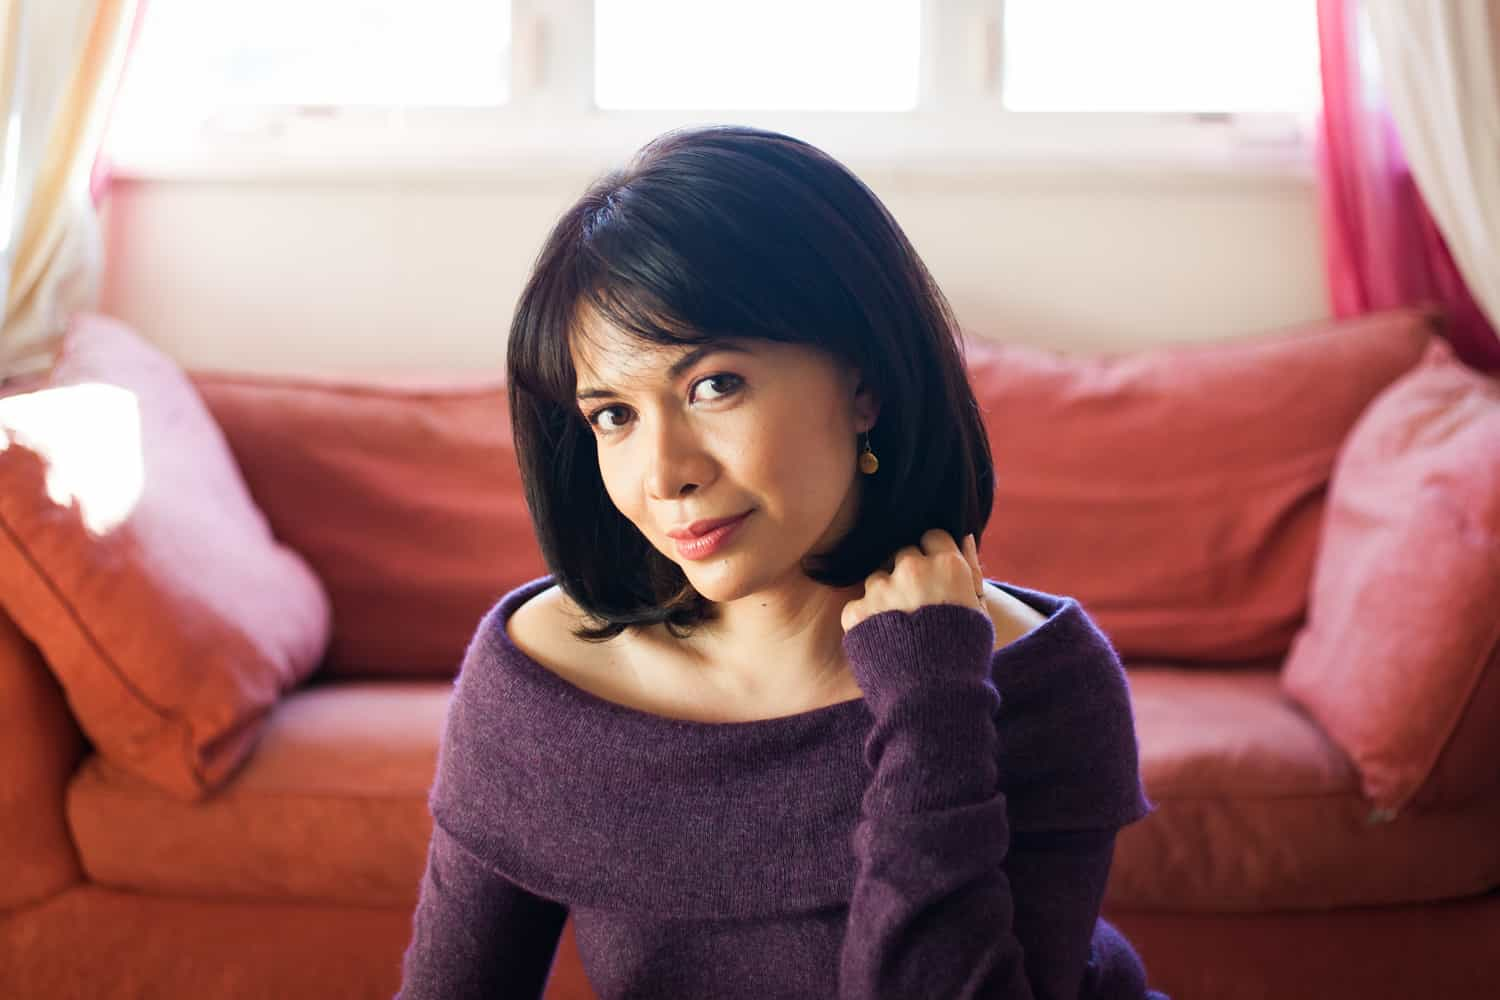 Woman with short black hair wearing purple sweater for an article on how to look slimmer in photos